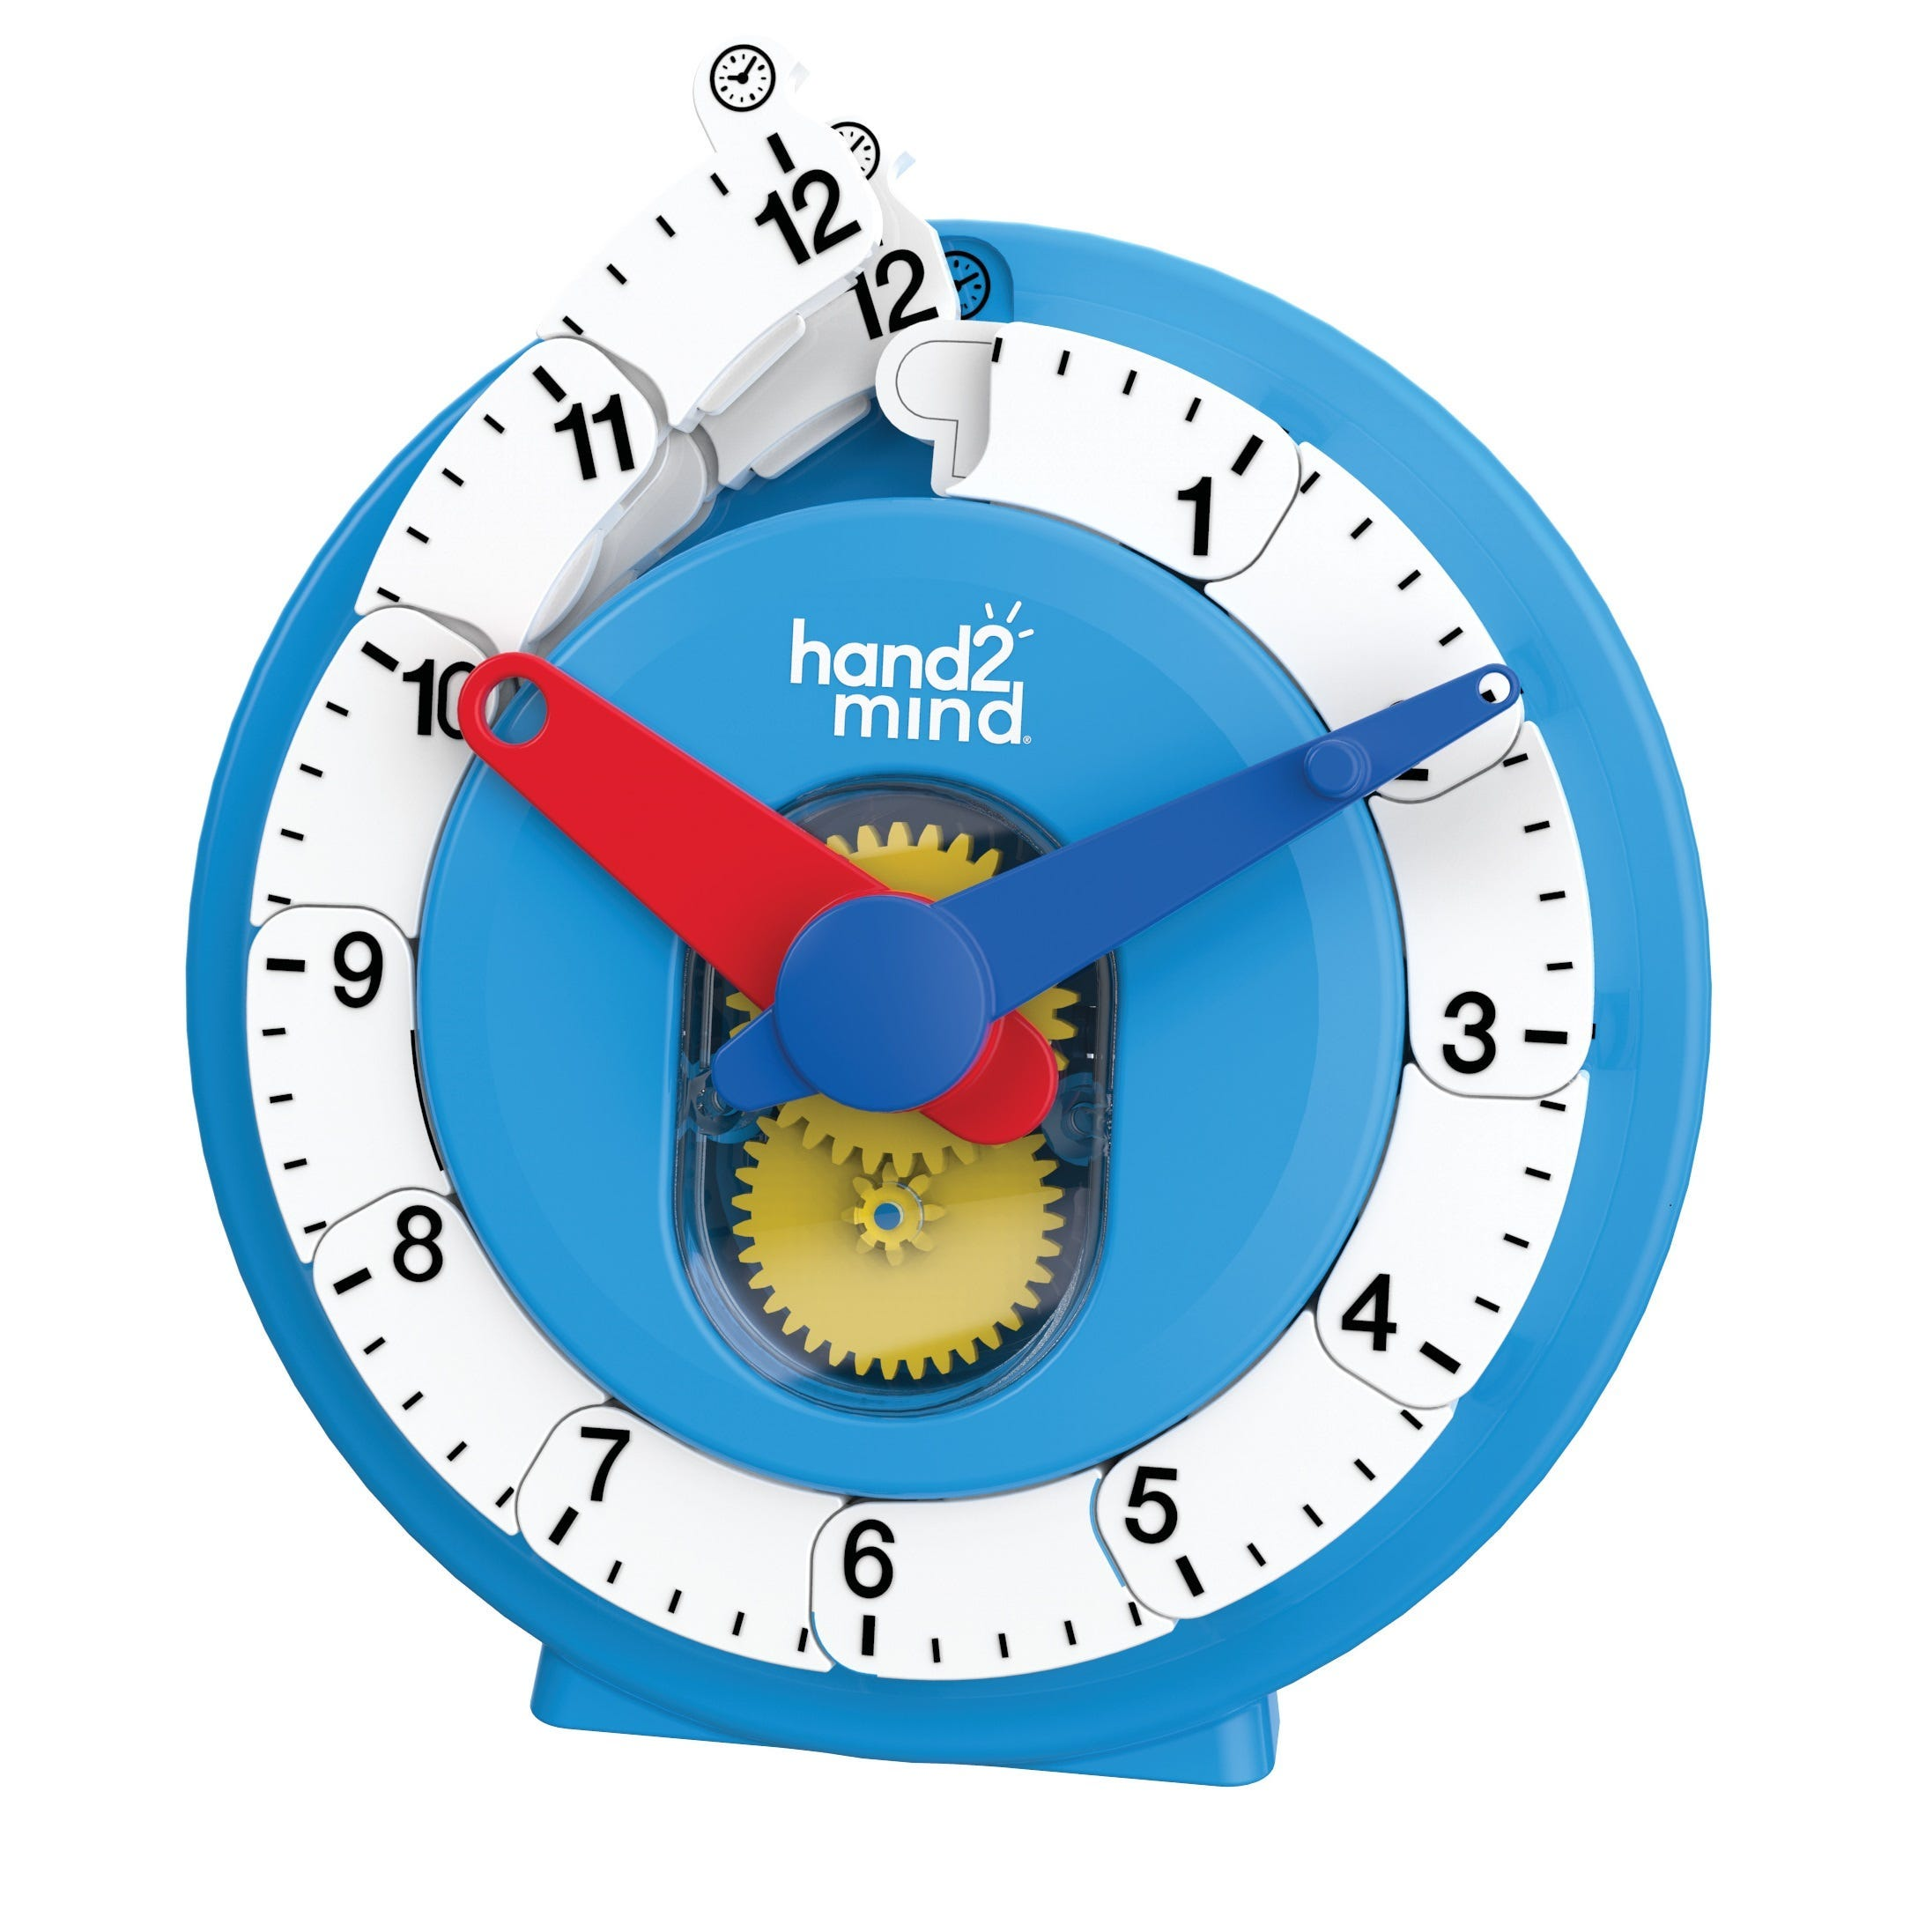 Advanced geared NumberLine Clock to teach elapsed time